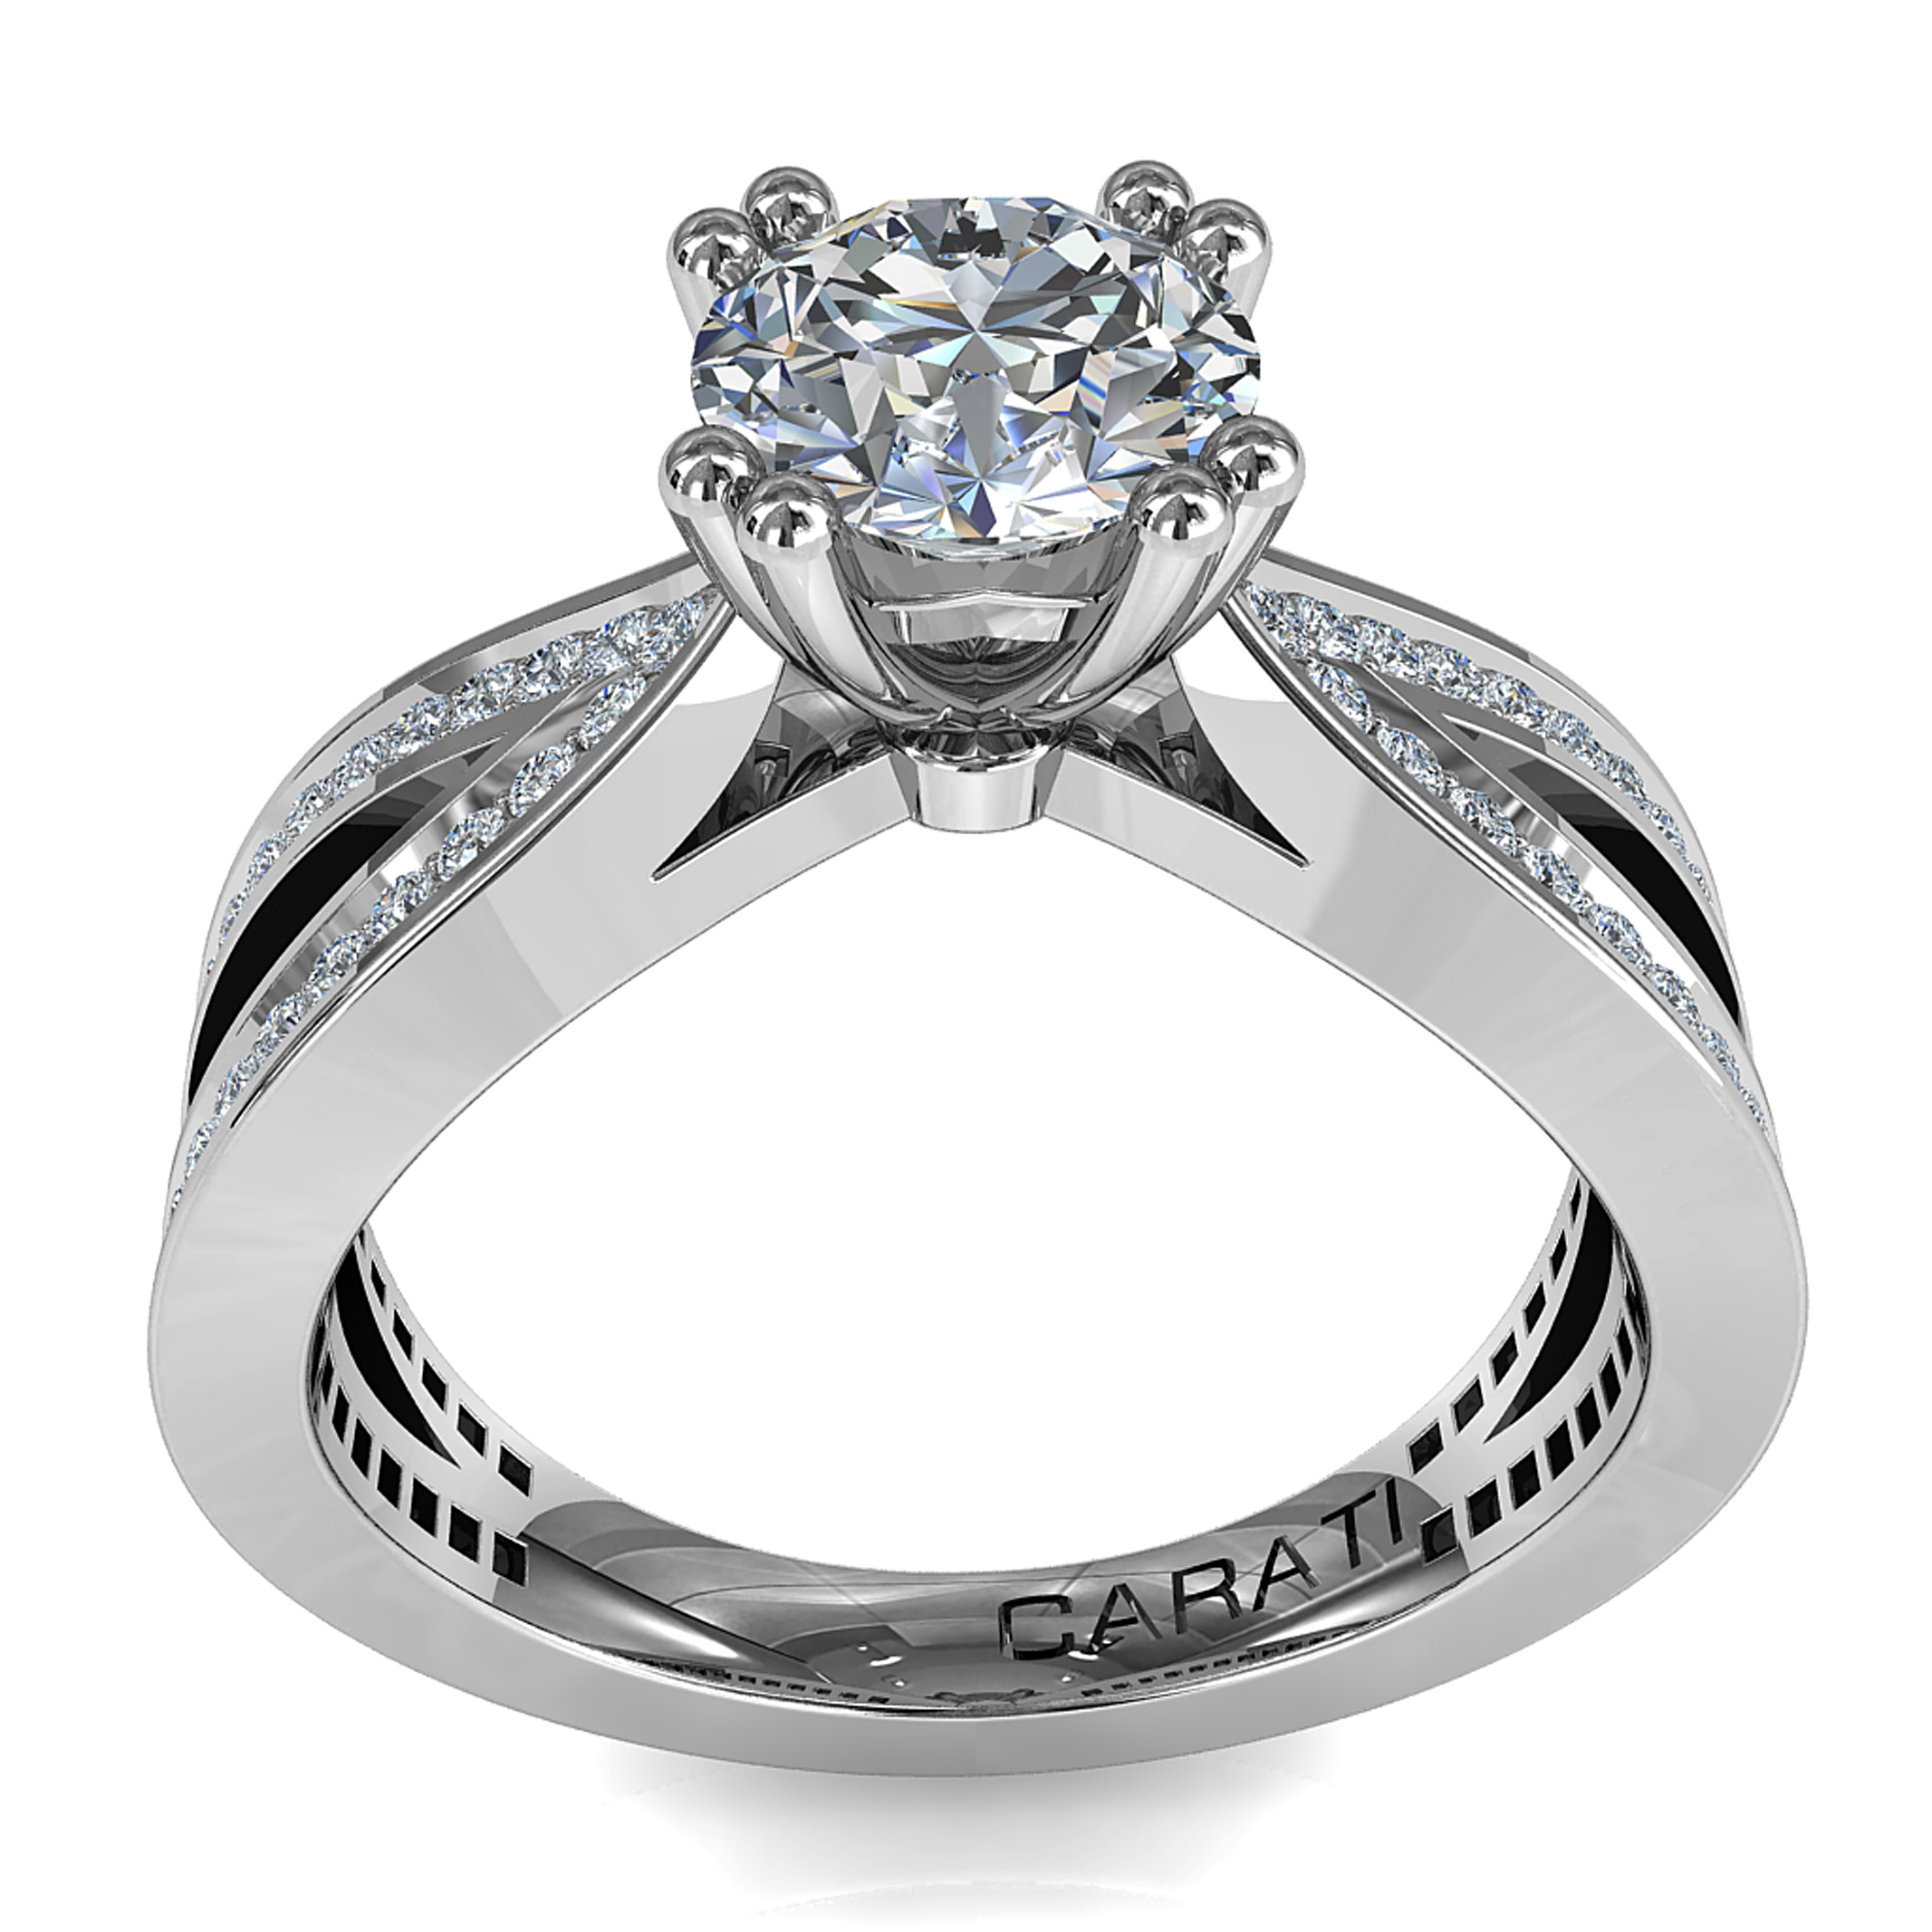 Round Brilliant Cut Diamond Solitaire Engagement Ring, 4 Double Claw Set on a Bead Set Bow Shaped Band.